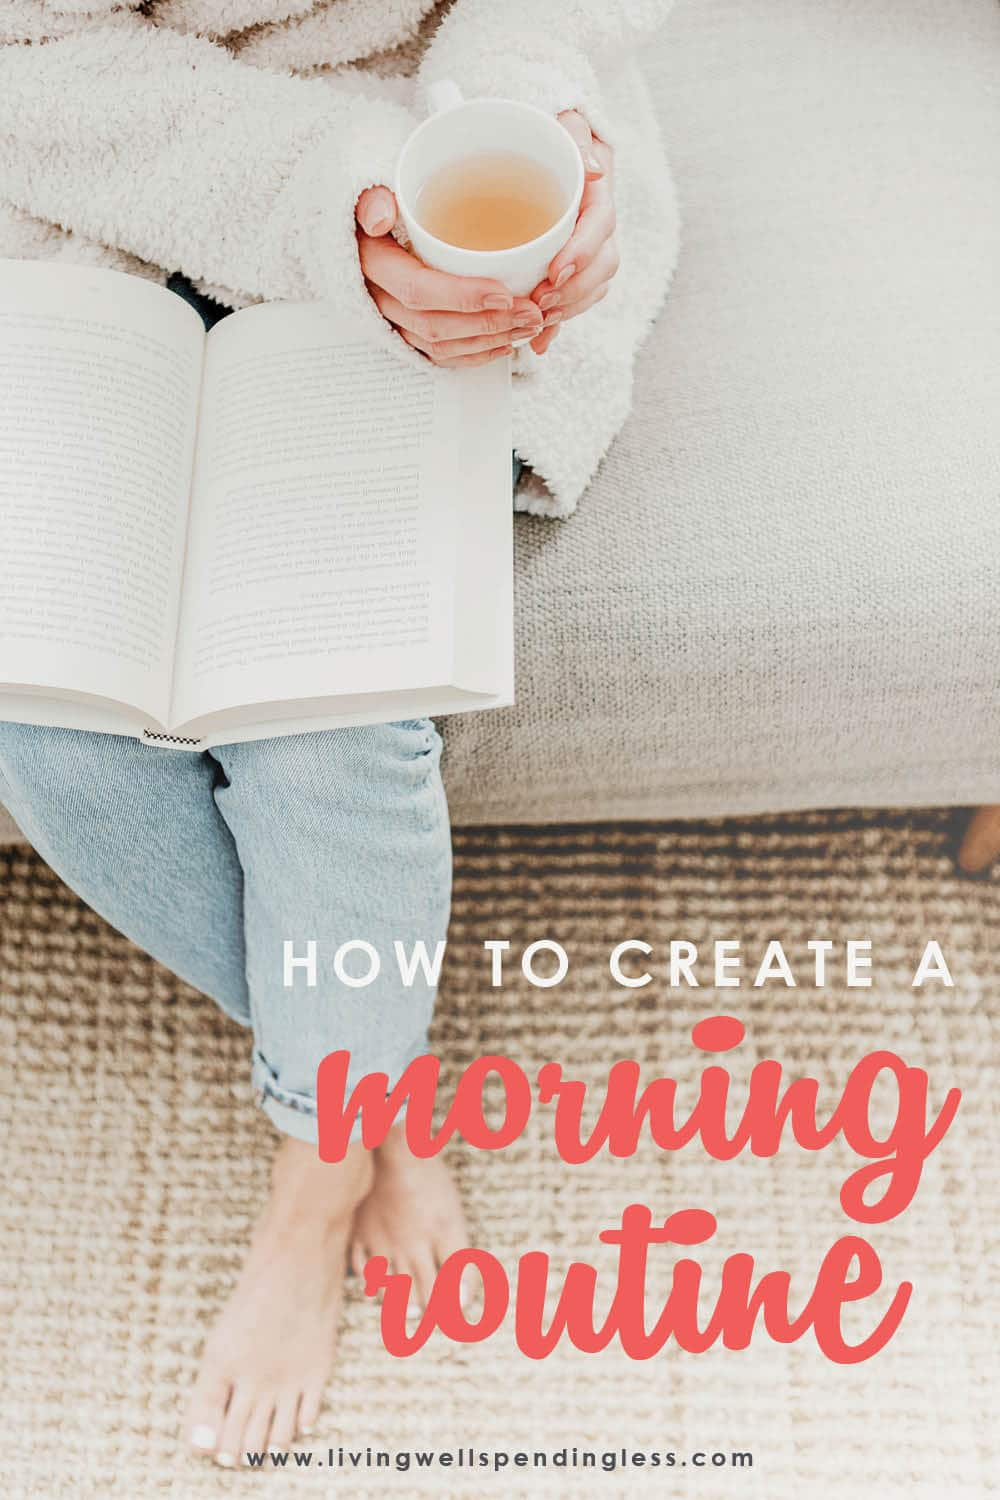 Do you ever wish your mornings ran more smoothly, or better yet, on autopilot? If you ever struggle with getting yourself or your family out the door, you will not want to miss these 6 simple steps for creating a morning routine that truly works. FREE PRINTABLES are included to help you make the most of your morning!